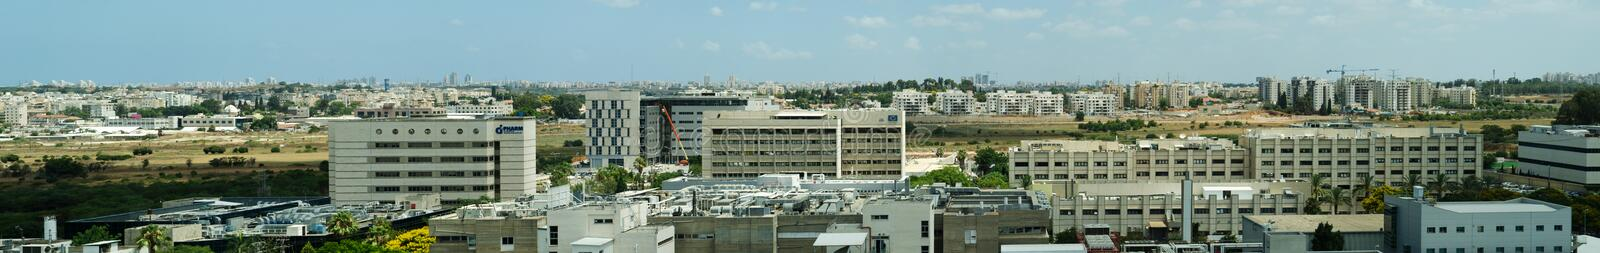 Download Nes Ziona panoramic view editorial stock image. Image of city - 32086679